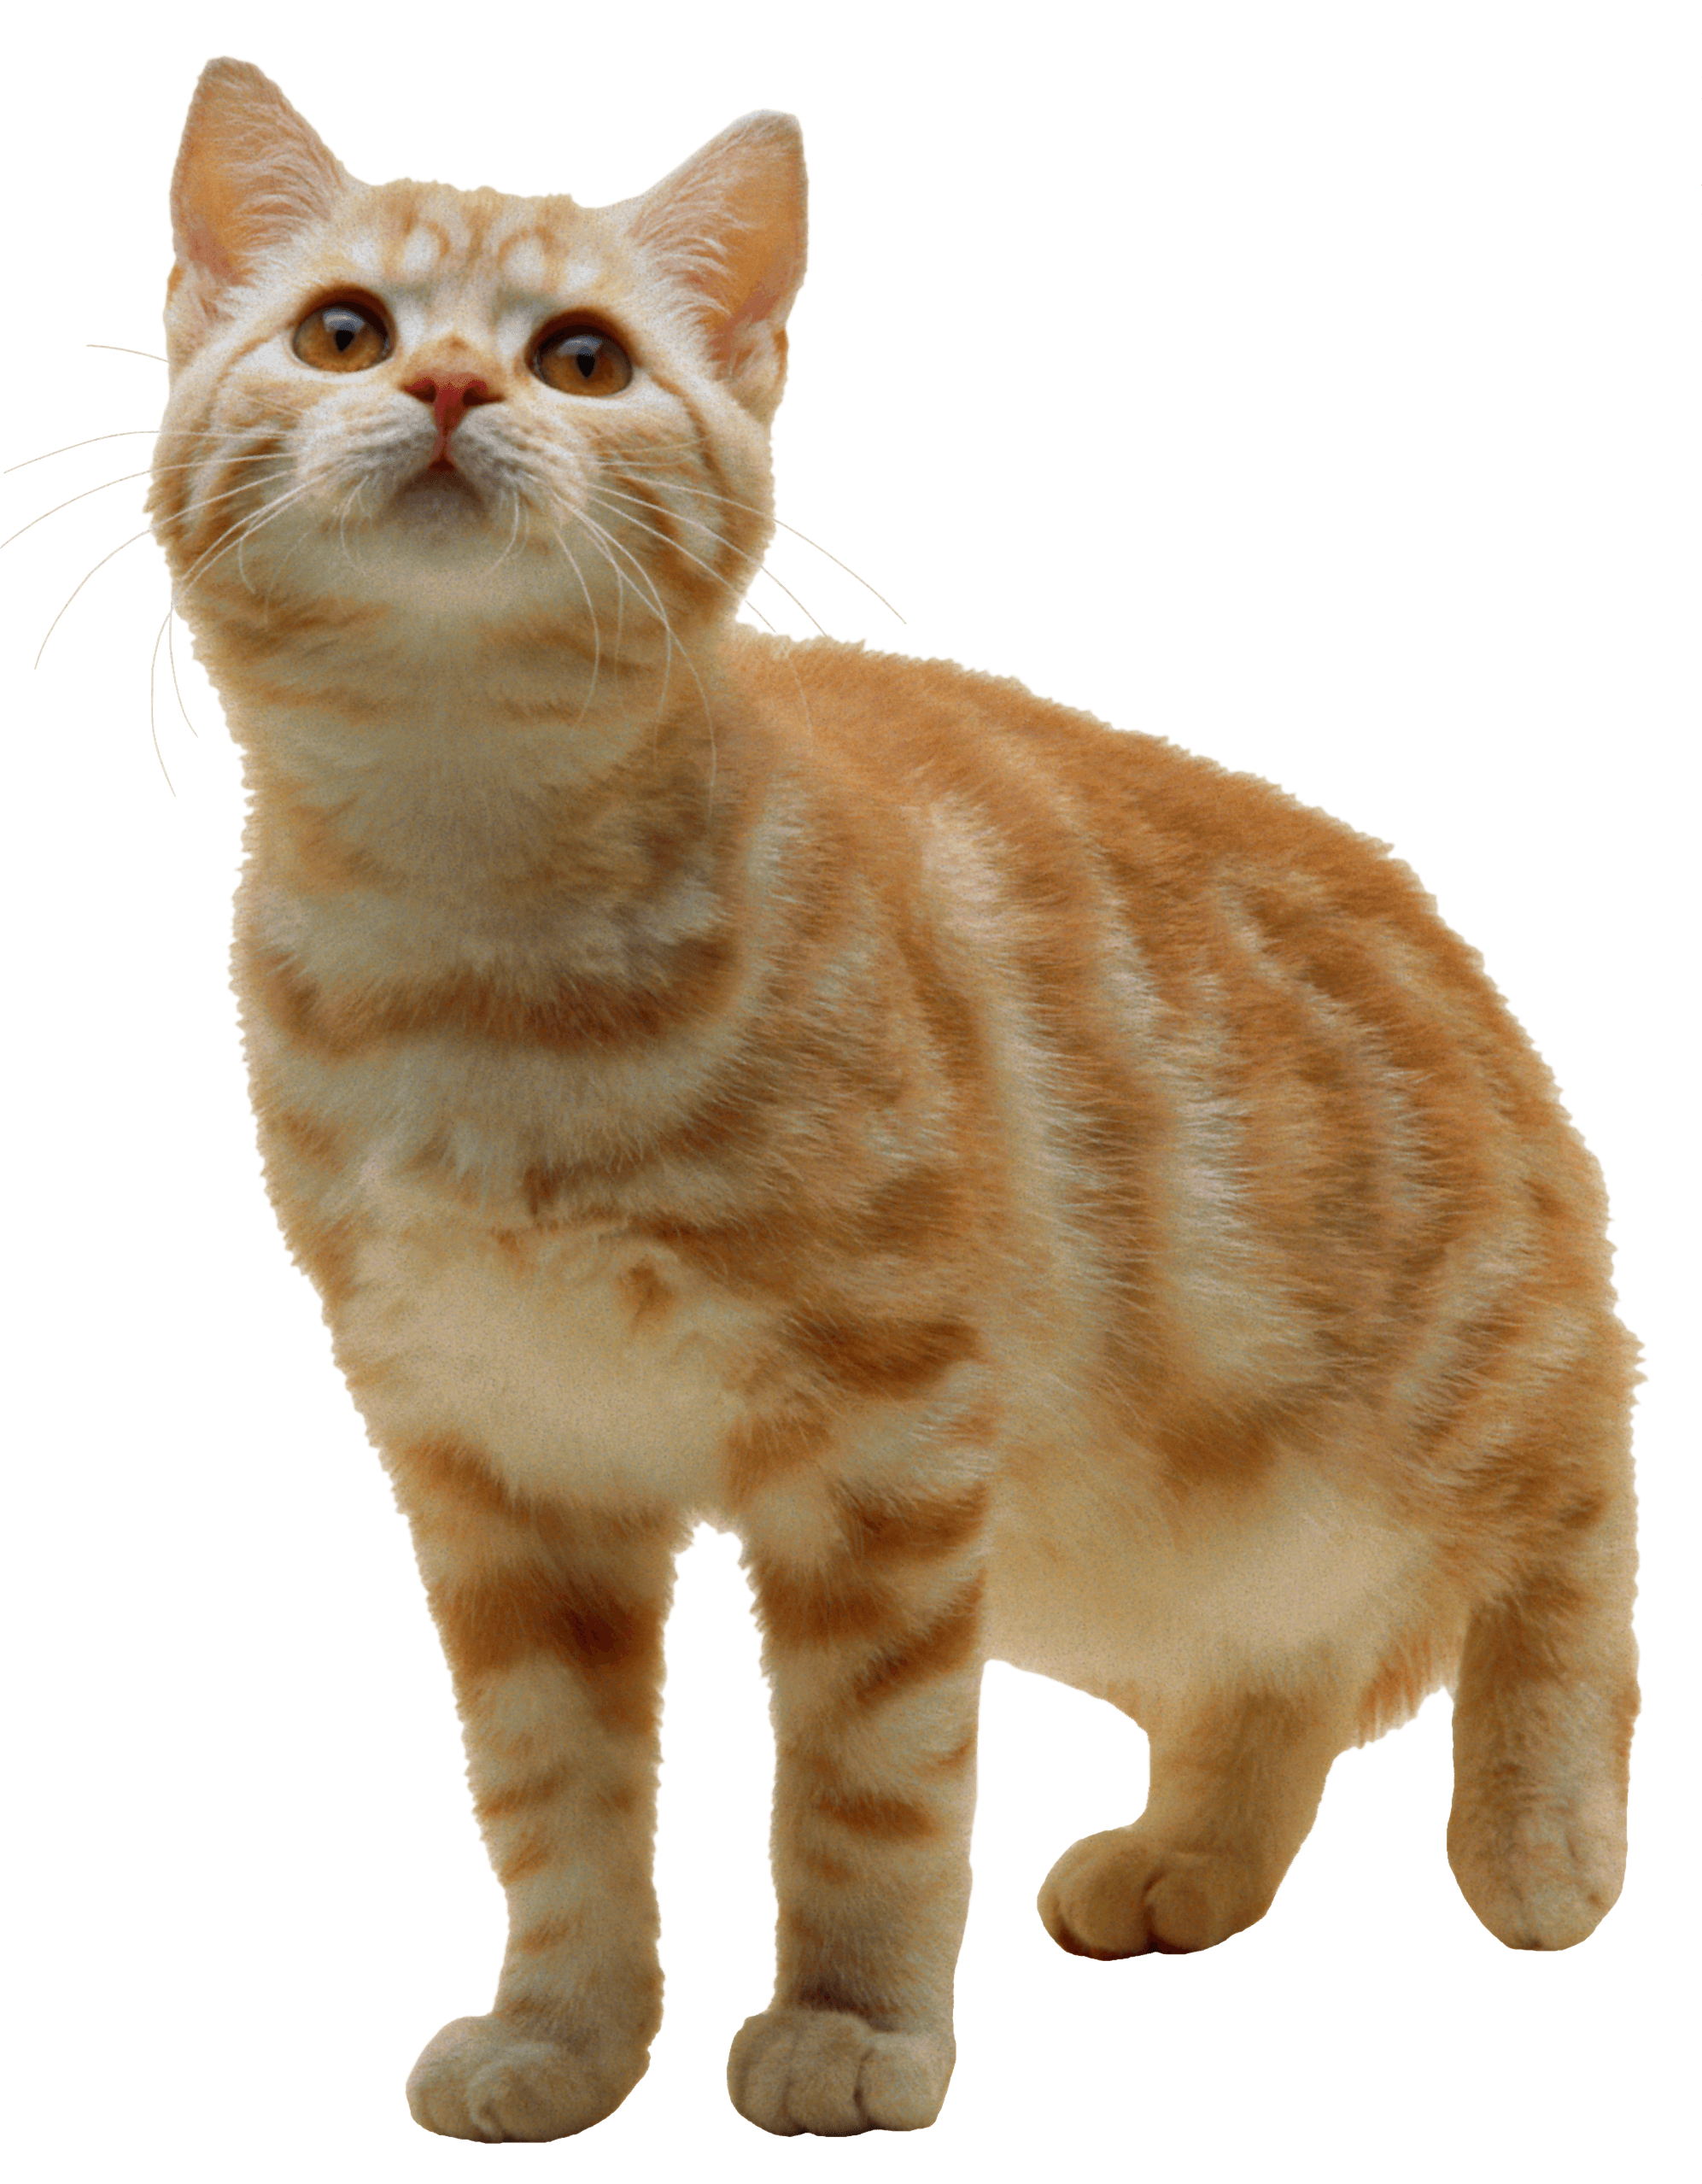 Sweet Cat Kitten PNG PNG Image.